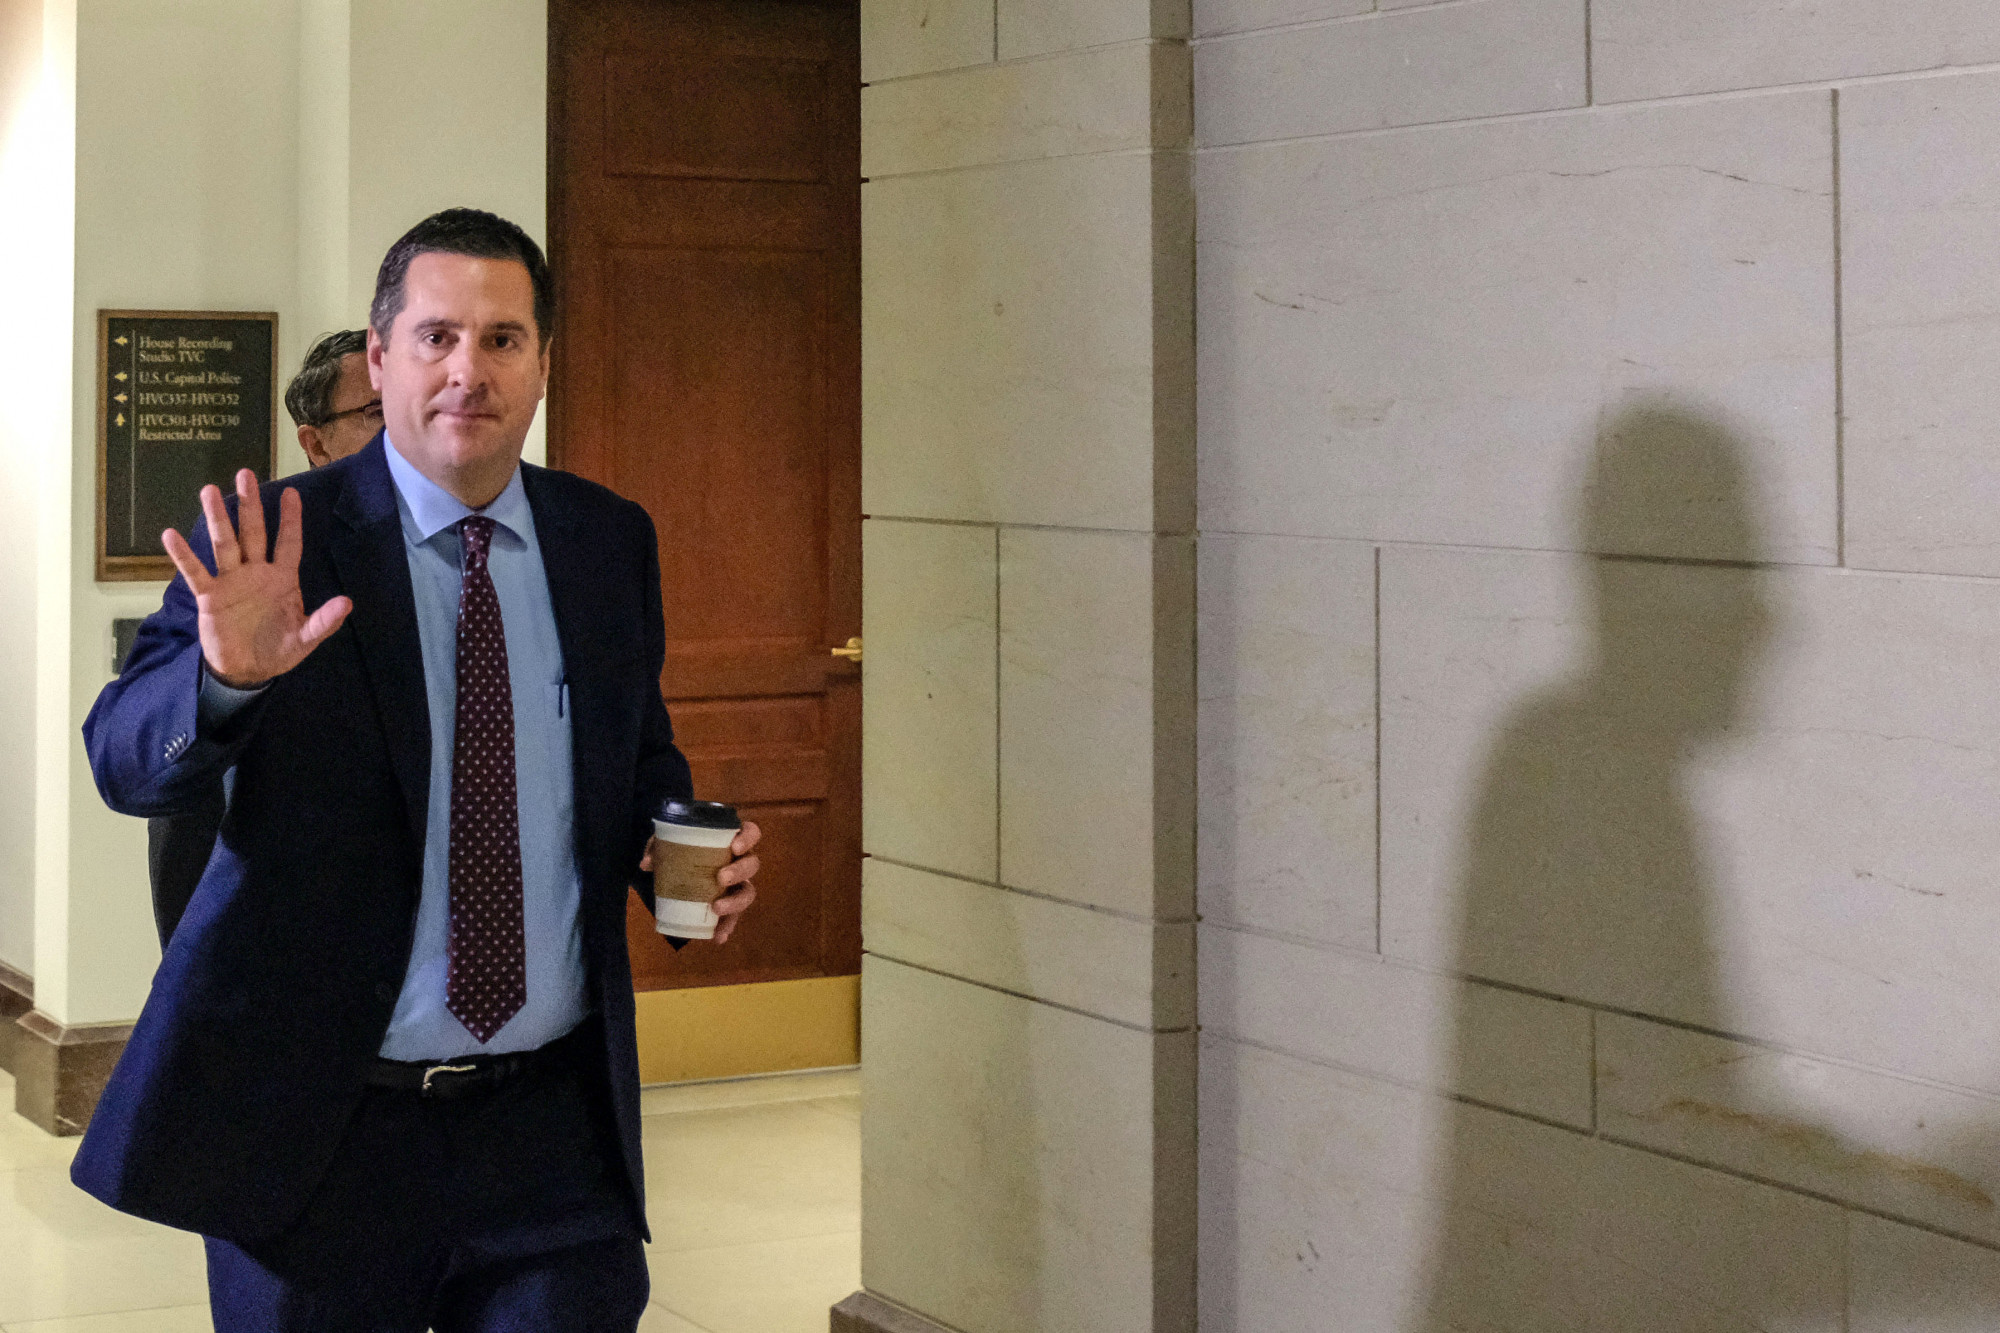 Early Leaks of Trump's Calls With Foreign Leaders Were Intelligence Products: Devin Nunes